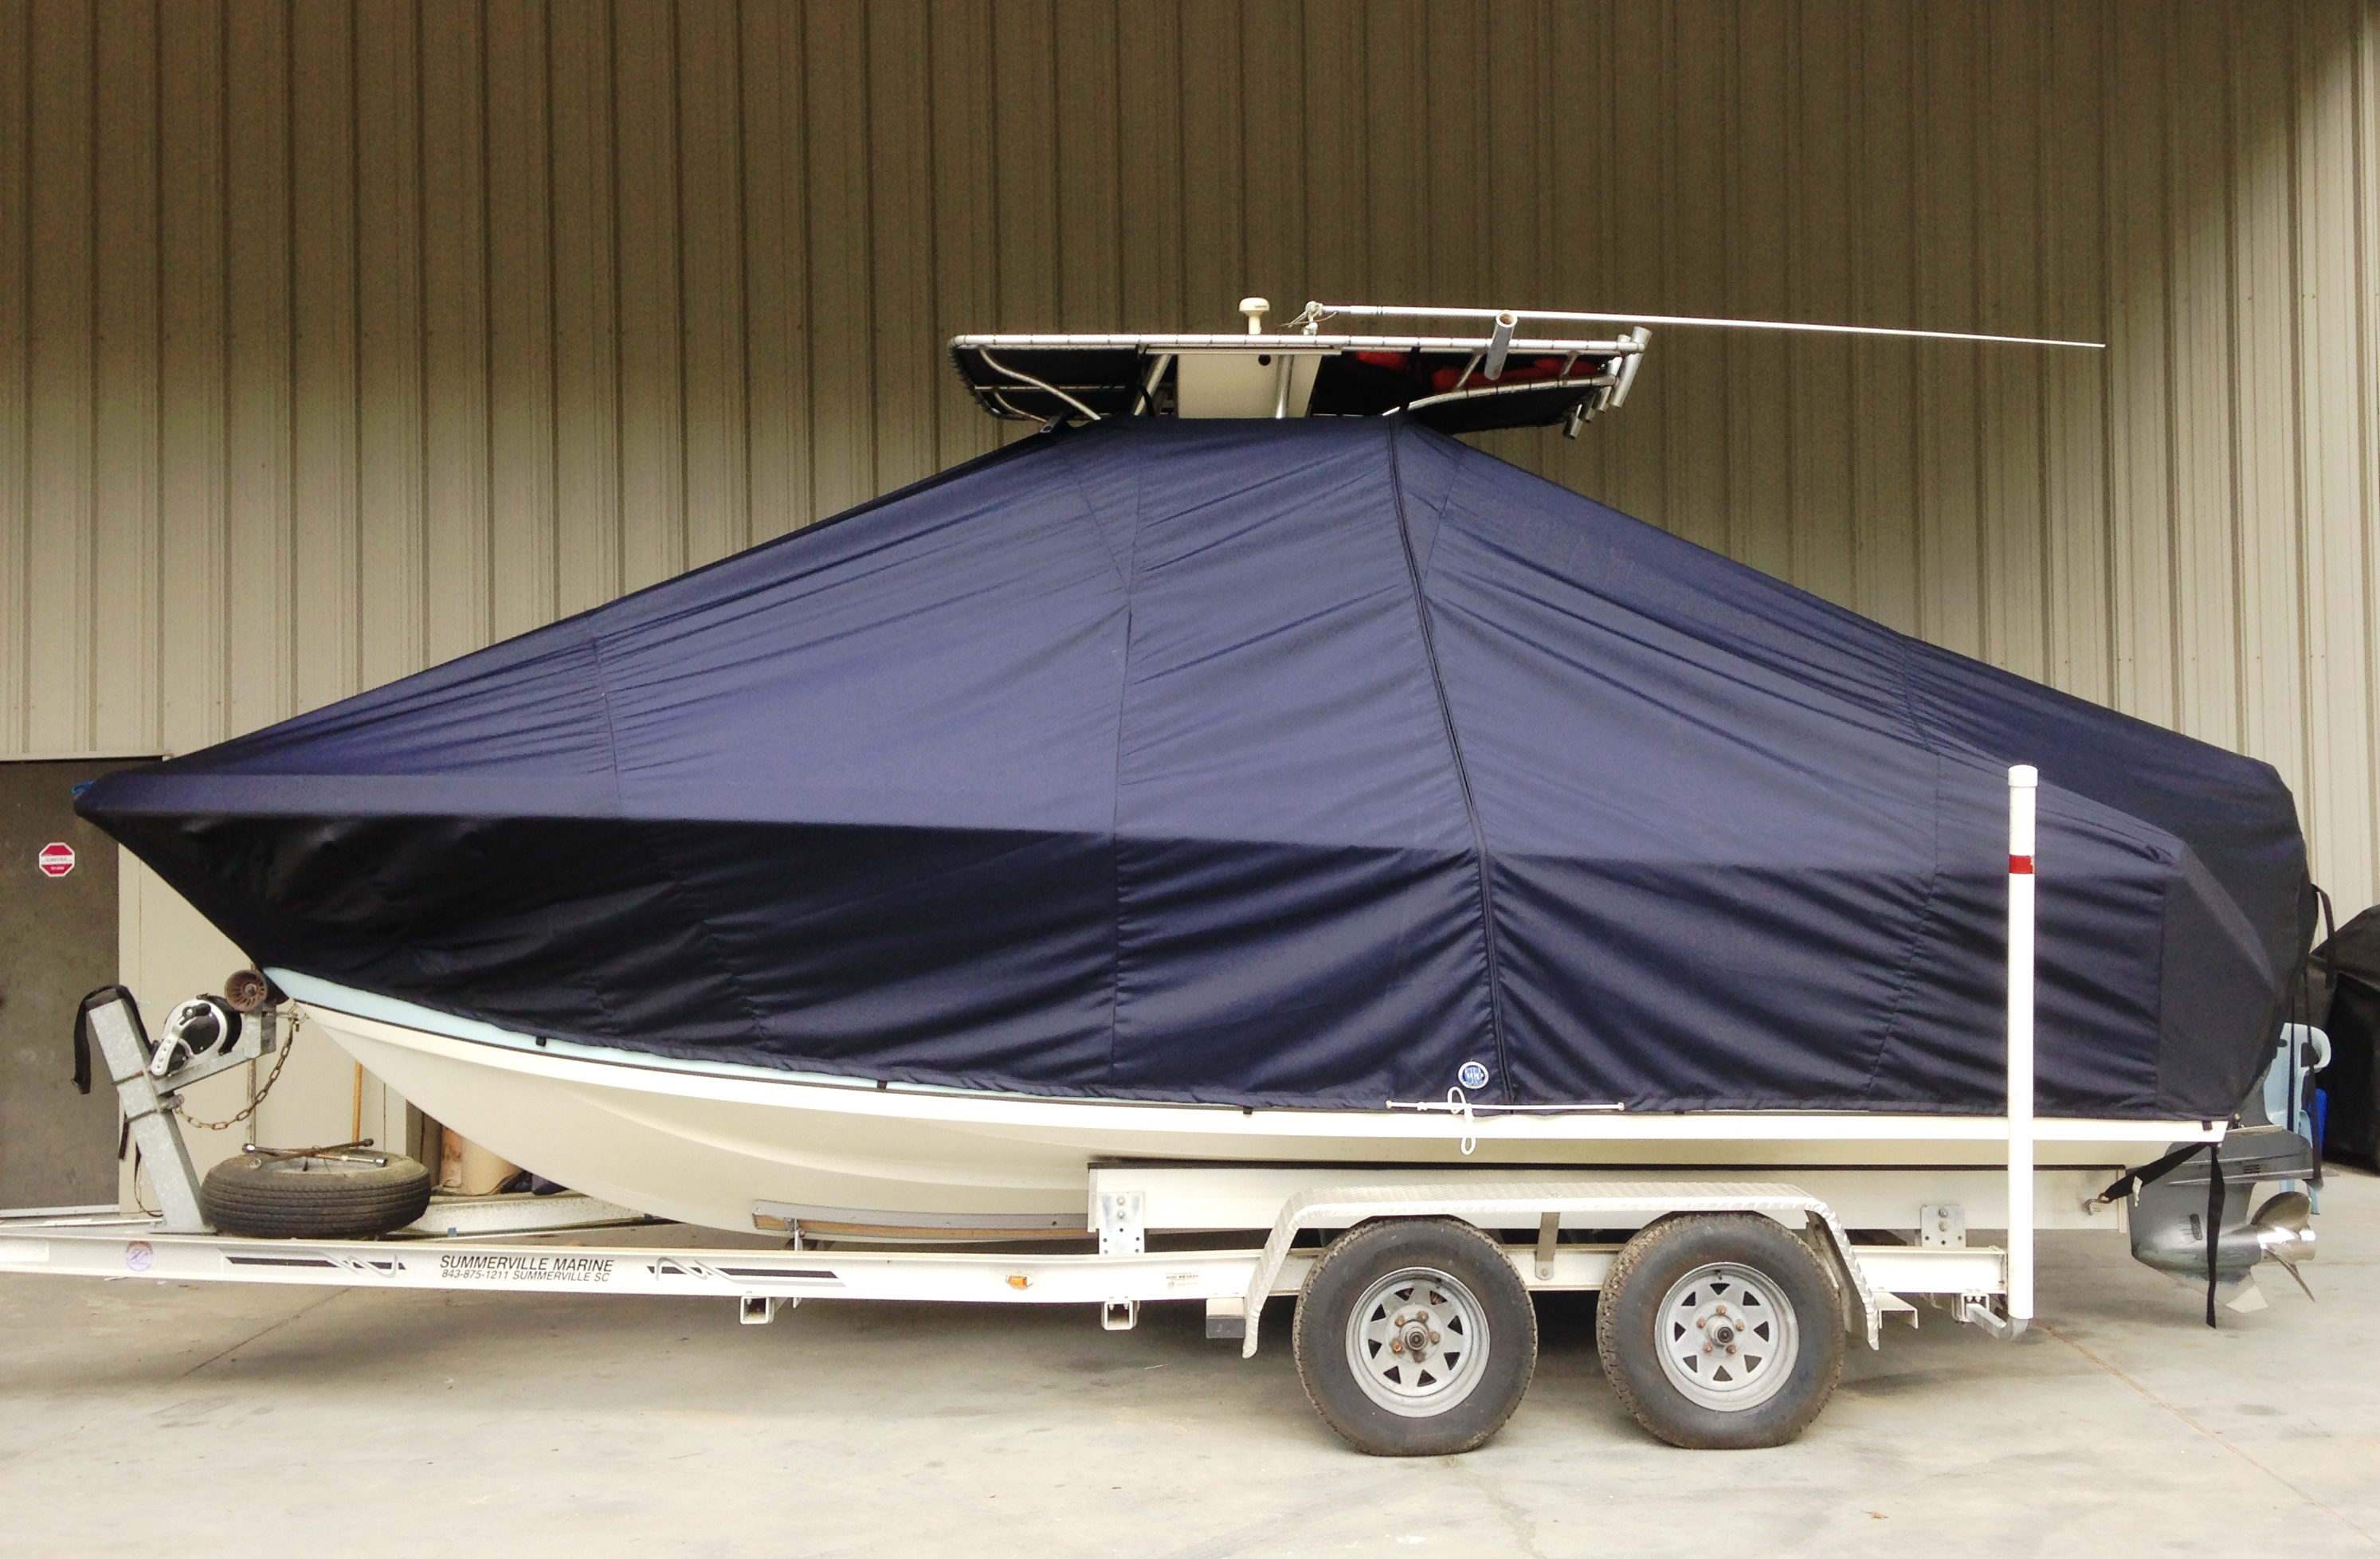 Sailfish 220CC, 20xx, TTopCovers™ T-Top boat cover, port side